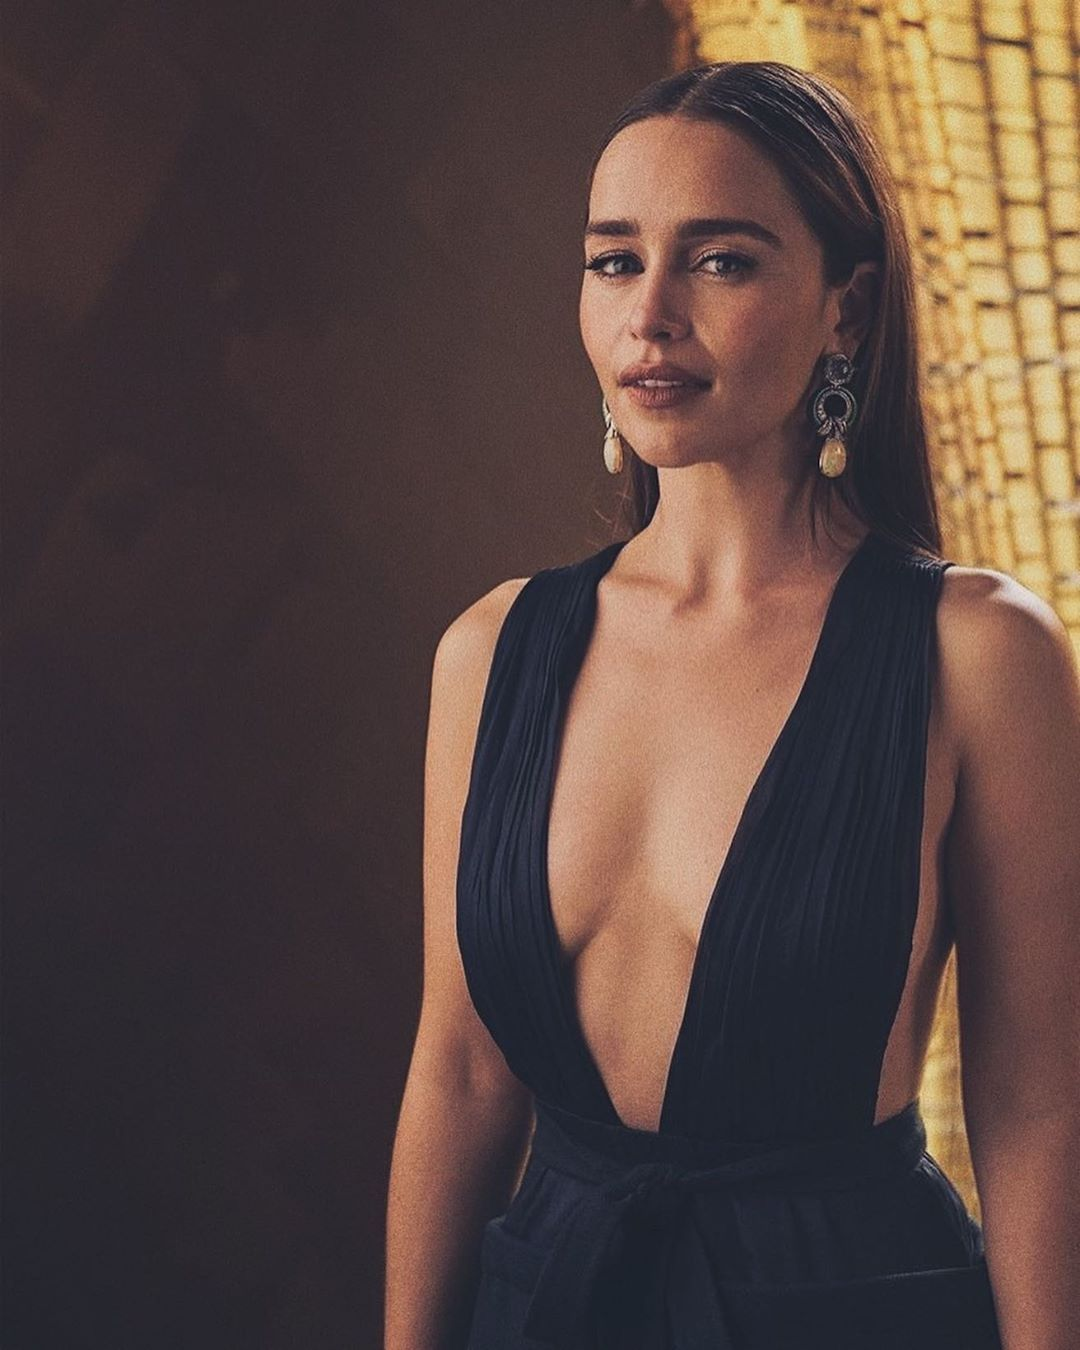 Emilia Clarke (Emmy Awards, 2019)